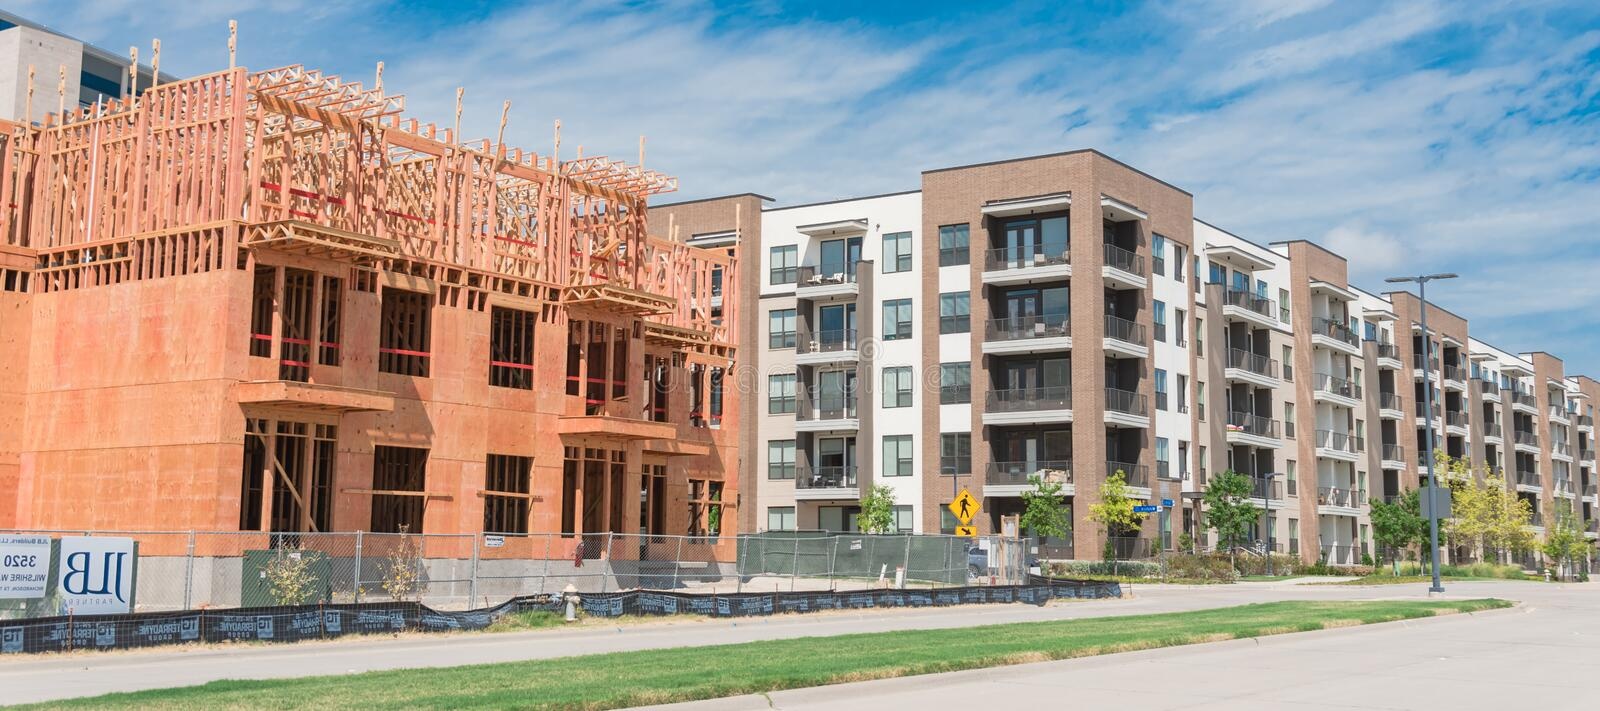 Panoramic urban upscale neighborhood with completed and under construction condos near Dallas royalty free stock photography